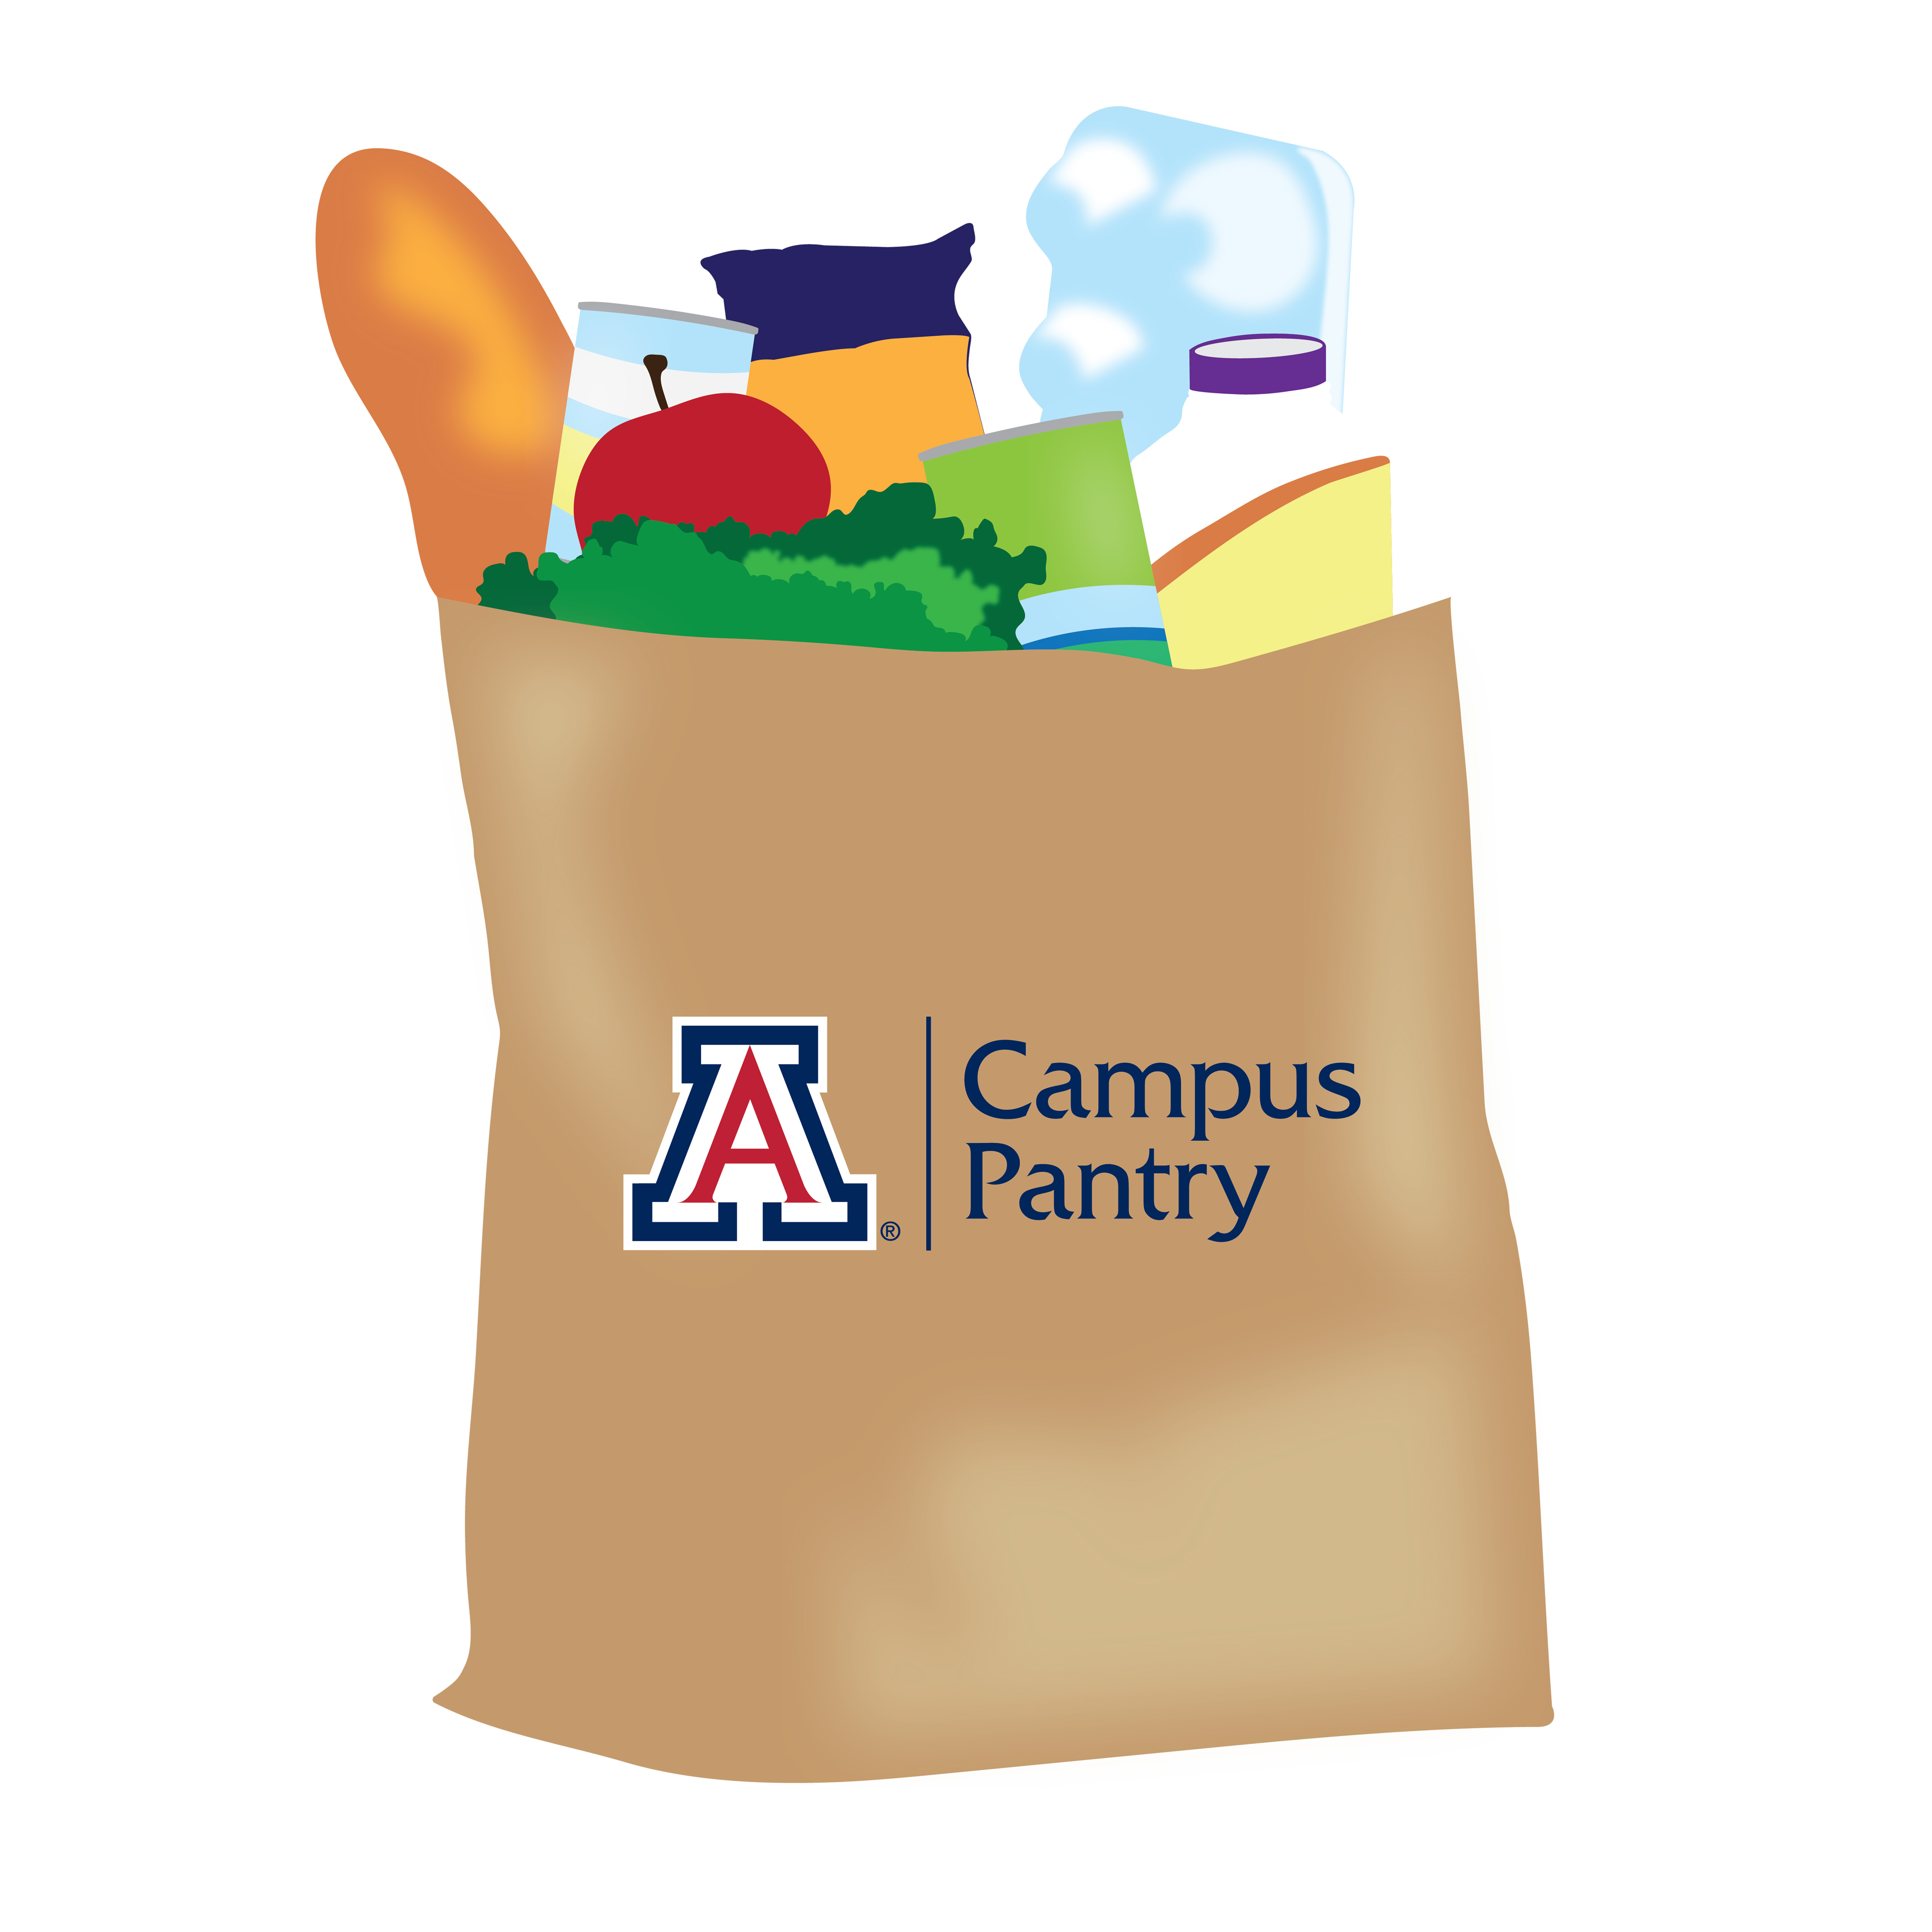 Image For $5 Gift to Campus Pantry